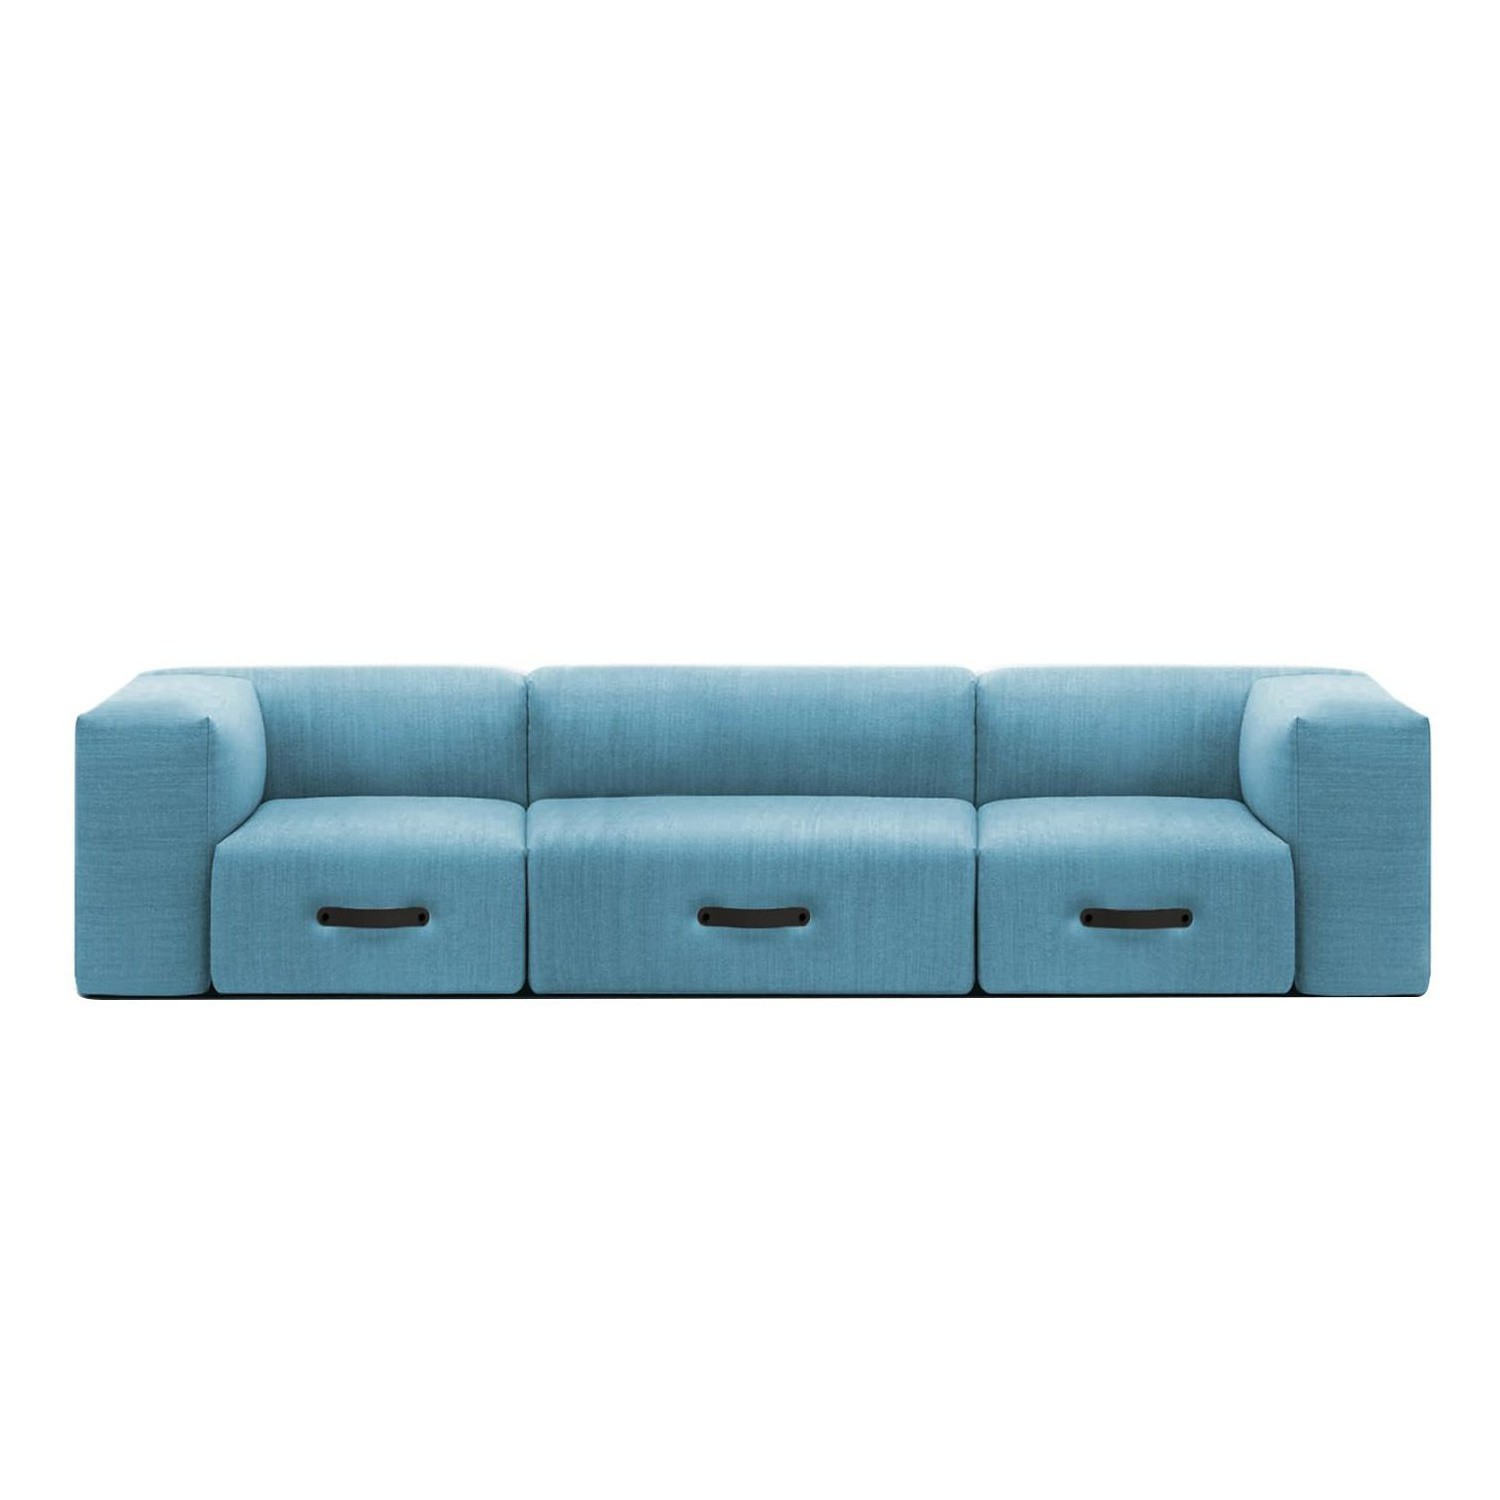 Groovy Miami Outdoor Sofa 3 Seater Download Free Architecture Designs Scobabritishbridgeorg